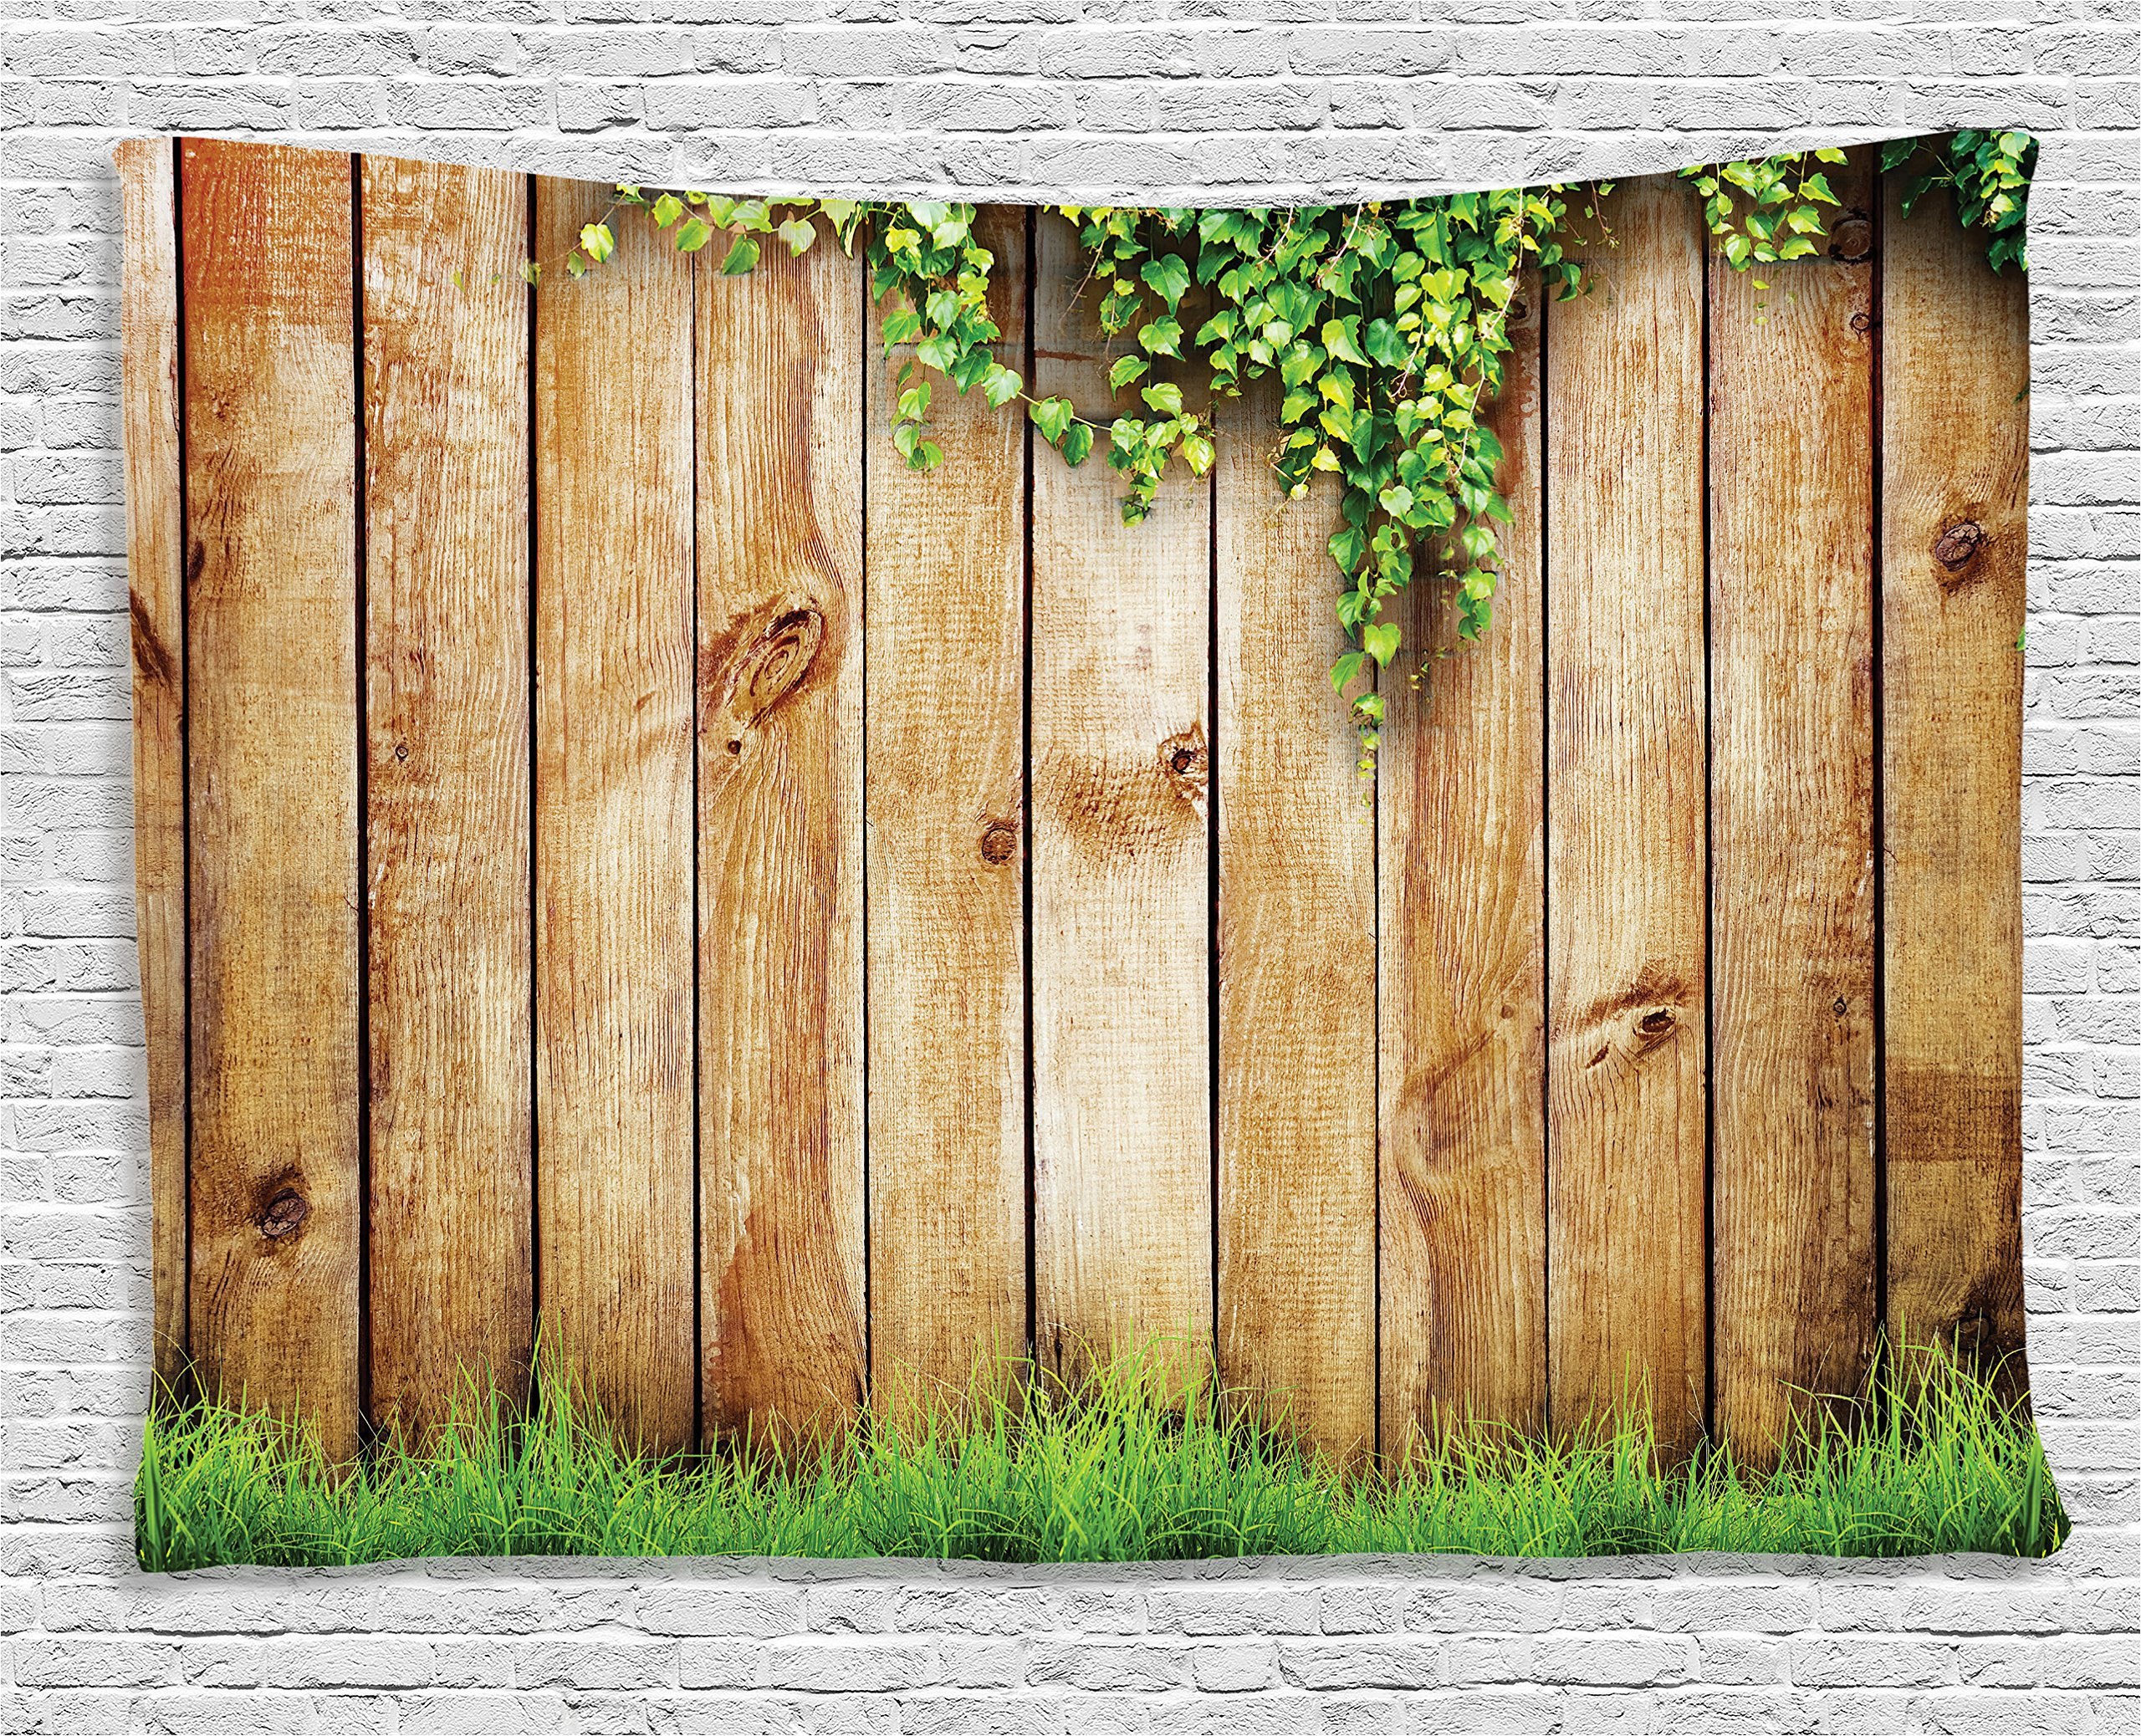 Ambesonne Rustic Home Decor Tapestry, Fresh Spring Grass and Leaf Plant Over Old Wood Fence Garden Field Photo, Wall Hanging for Bedroom Living Room Dorm, 80 W X 60 L inches, Green Brown